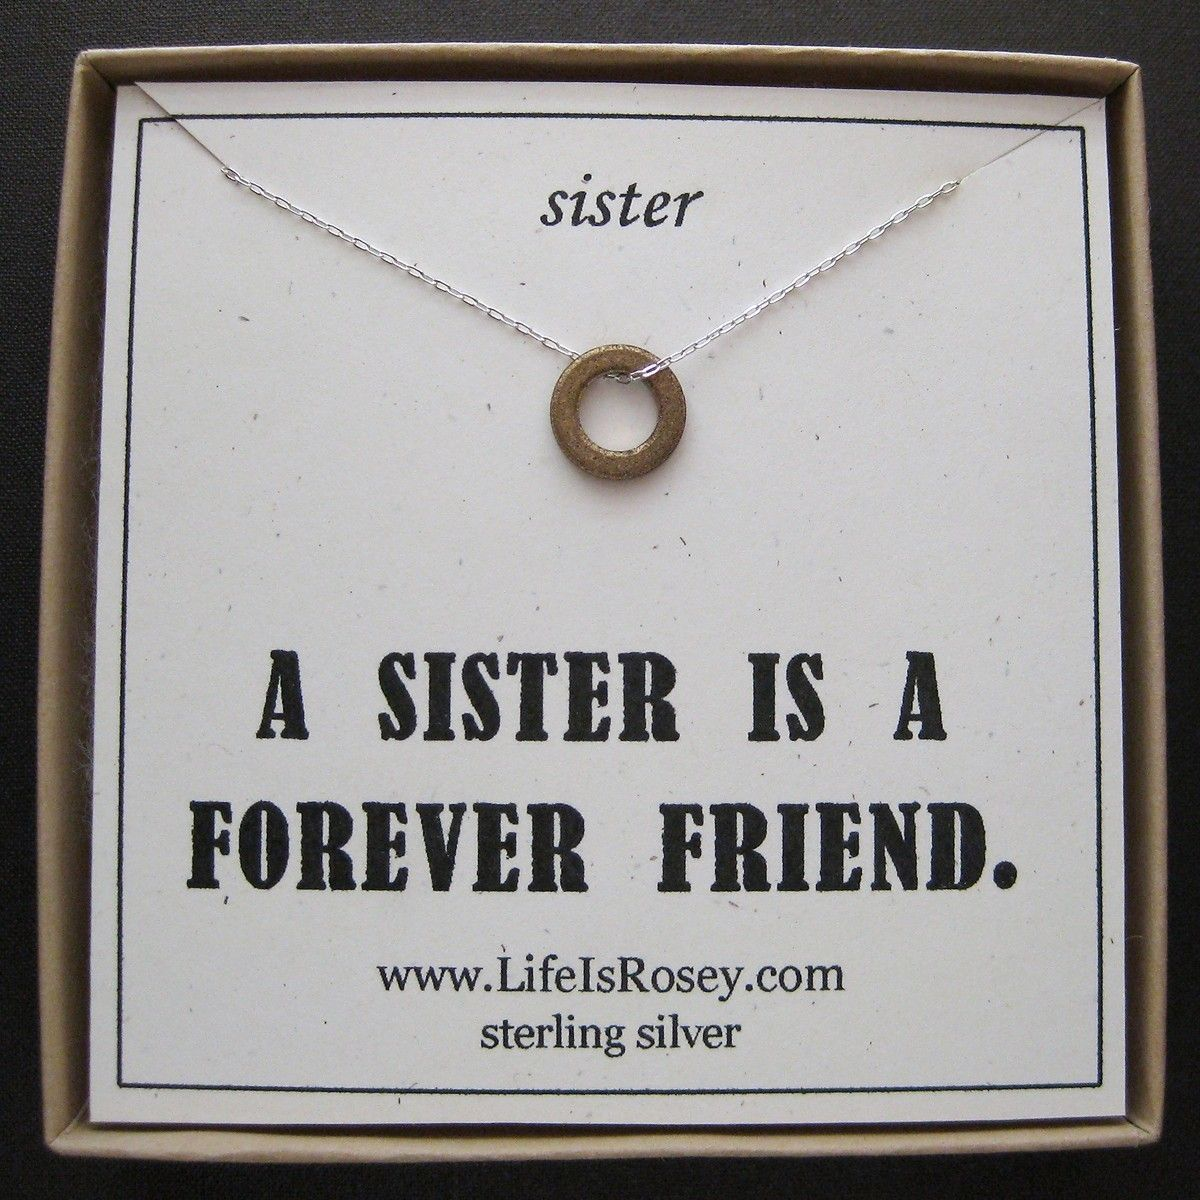 Sterling silver sister charm necklace a life is rosey original sterling silver sister charm necklace a life is rosey original quote card gift for sister gift for sis sister gift 2800 via etsy negle Choice Image